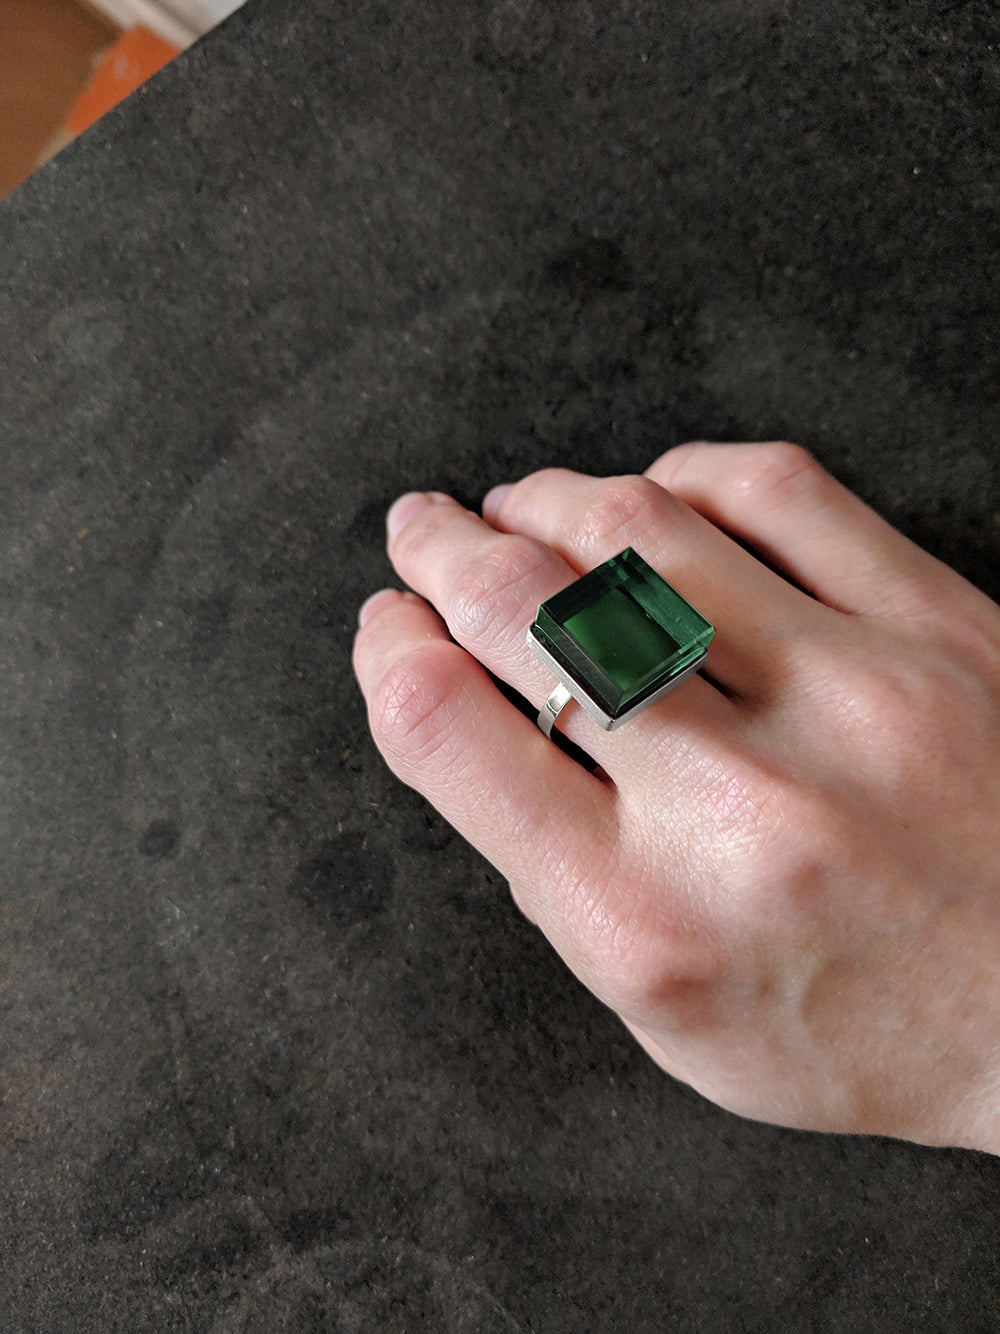 Sterling Silver Art Deco Ink Ring with Green Quartz by Artist, Featured in Vogue